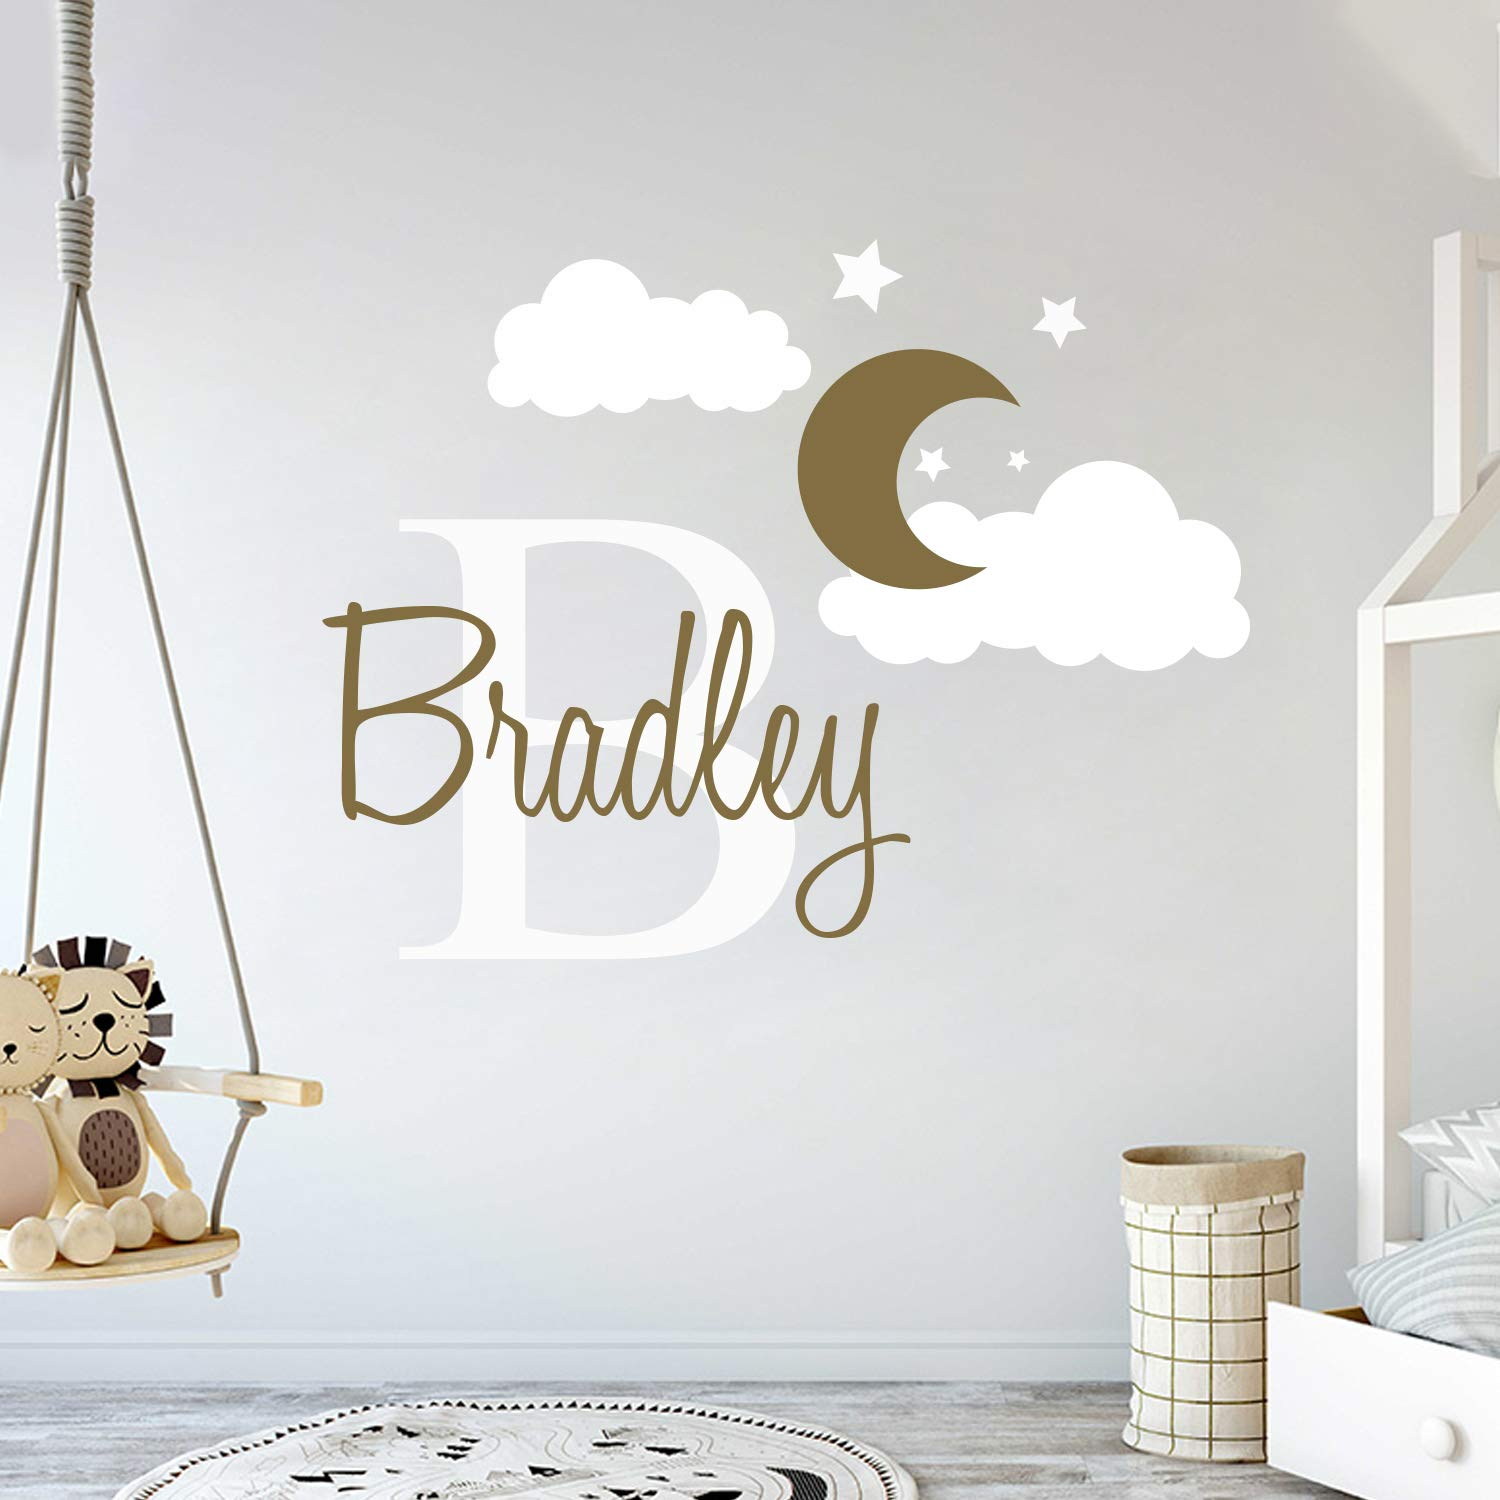 Custom Name & Initial Moon Clouds Stars - Baby Boy - Nursery Wall Decal For Baby Room Decorations - Mural Wall Decal Sticker For Home Children's Bedroom (MM109) (Wide 42'' x 32'' Height)